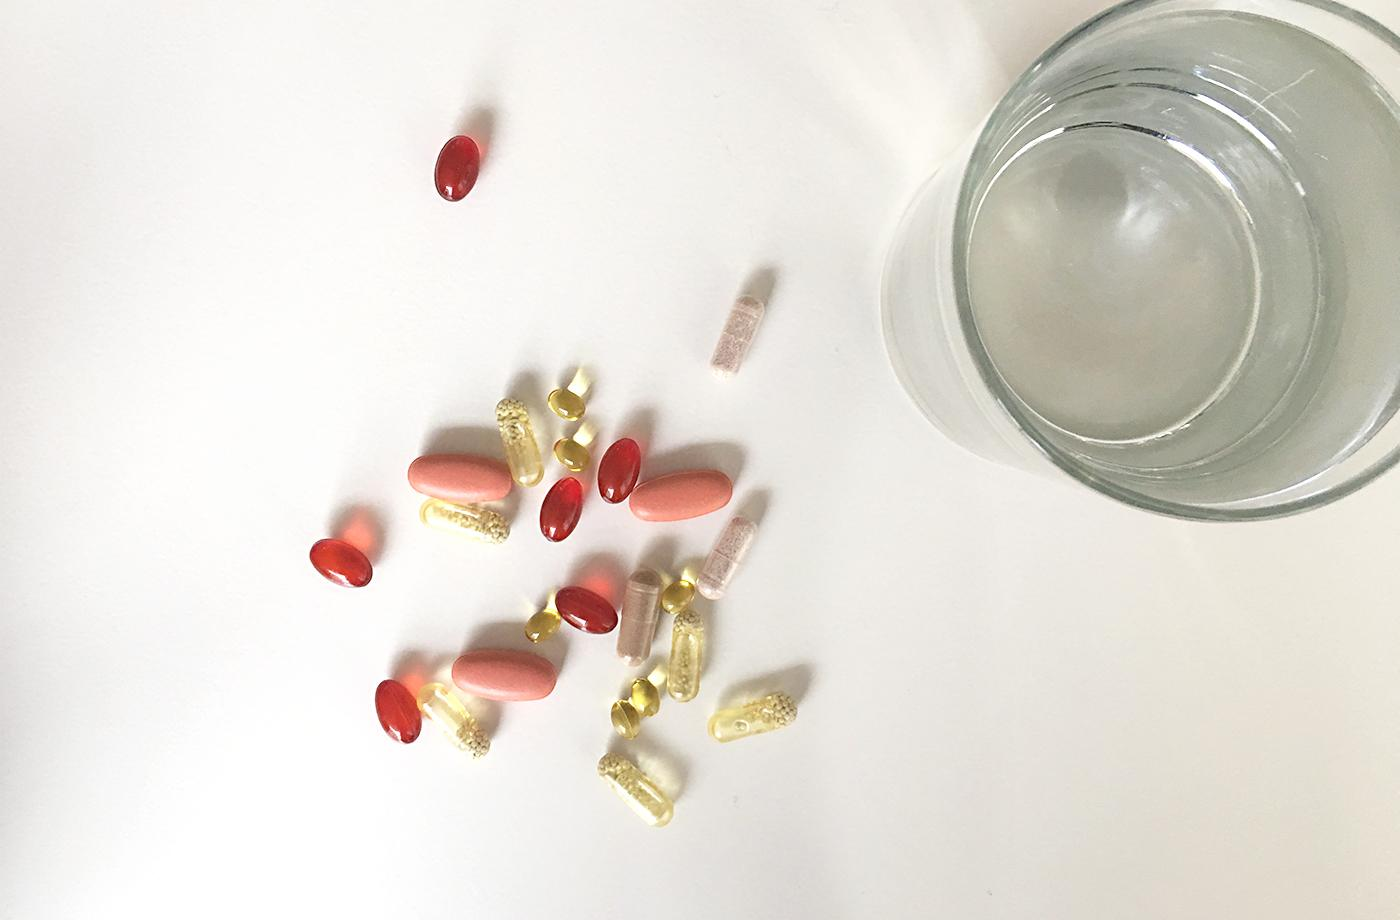 Thumbnail for Deficient in vitamin D? Magnesium could be your new BFF